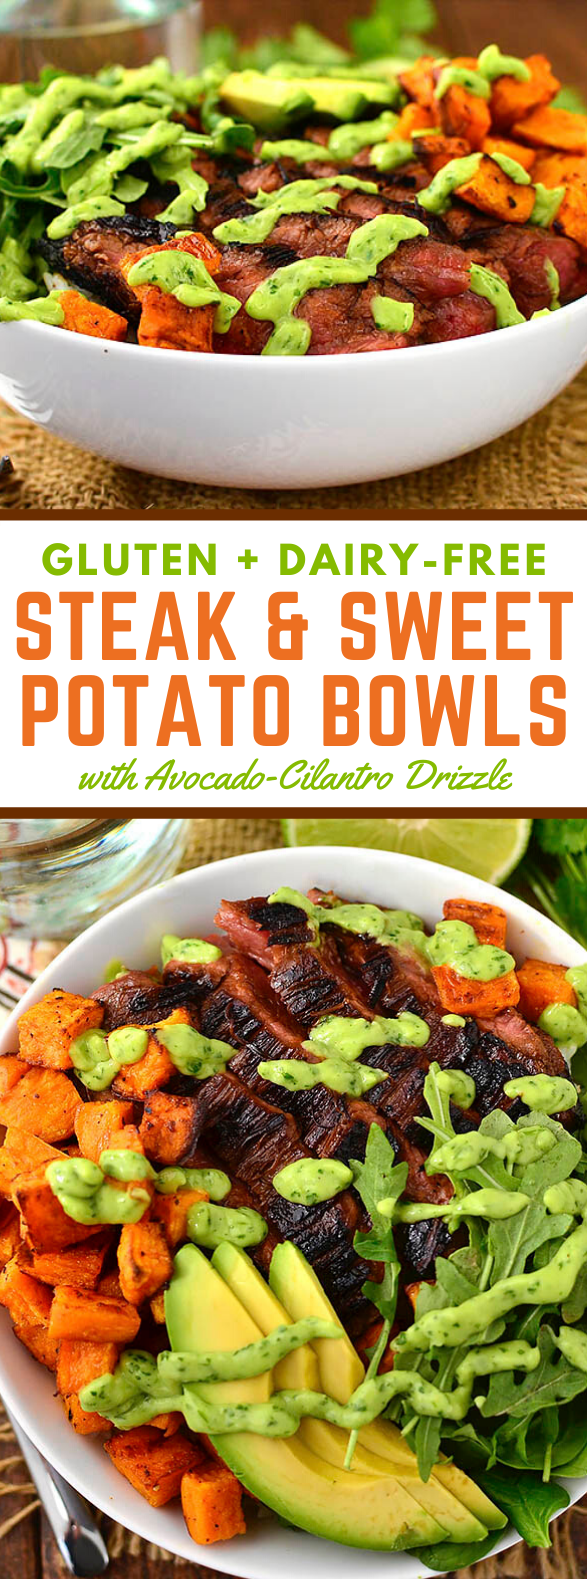 Steak and Sweet Potato Bowls with Avocado-Cilantro Drizzle #healthy #dinner